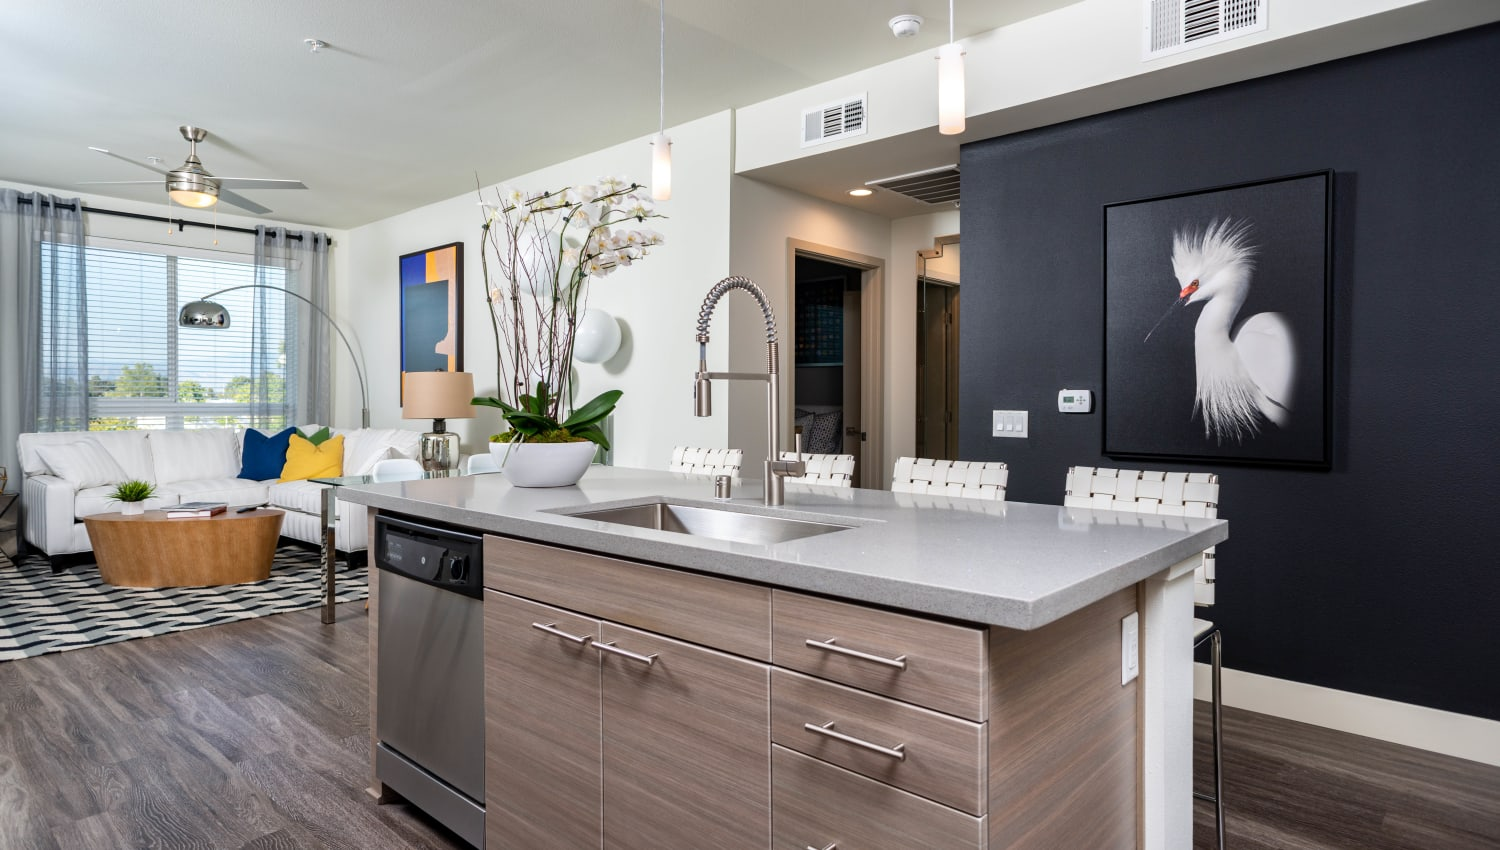 View of the living area from a model apartment's kitchen at Fusion Apartments in Irvine, California